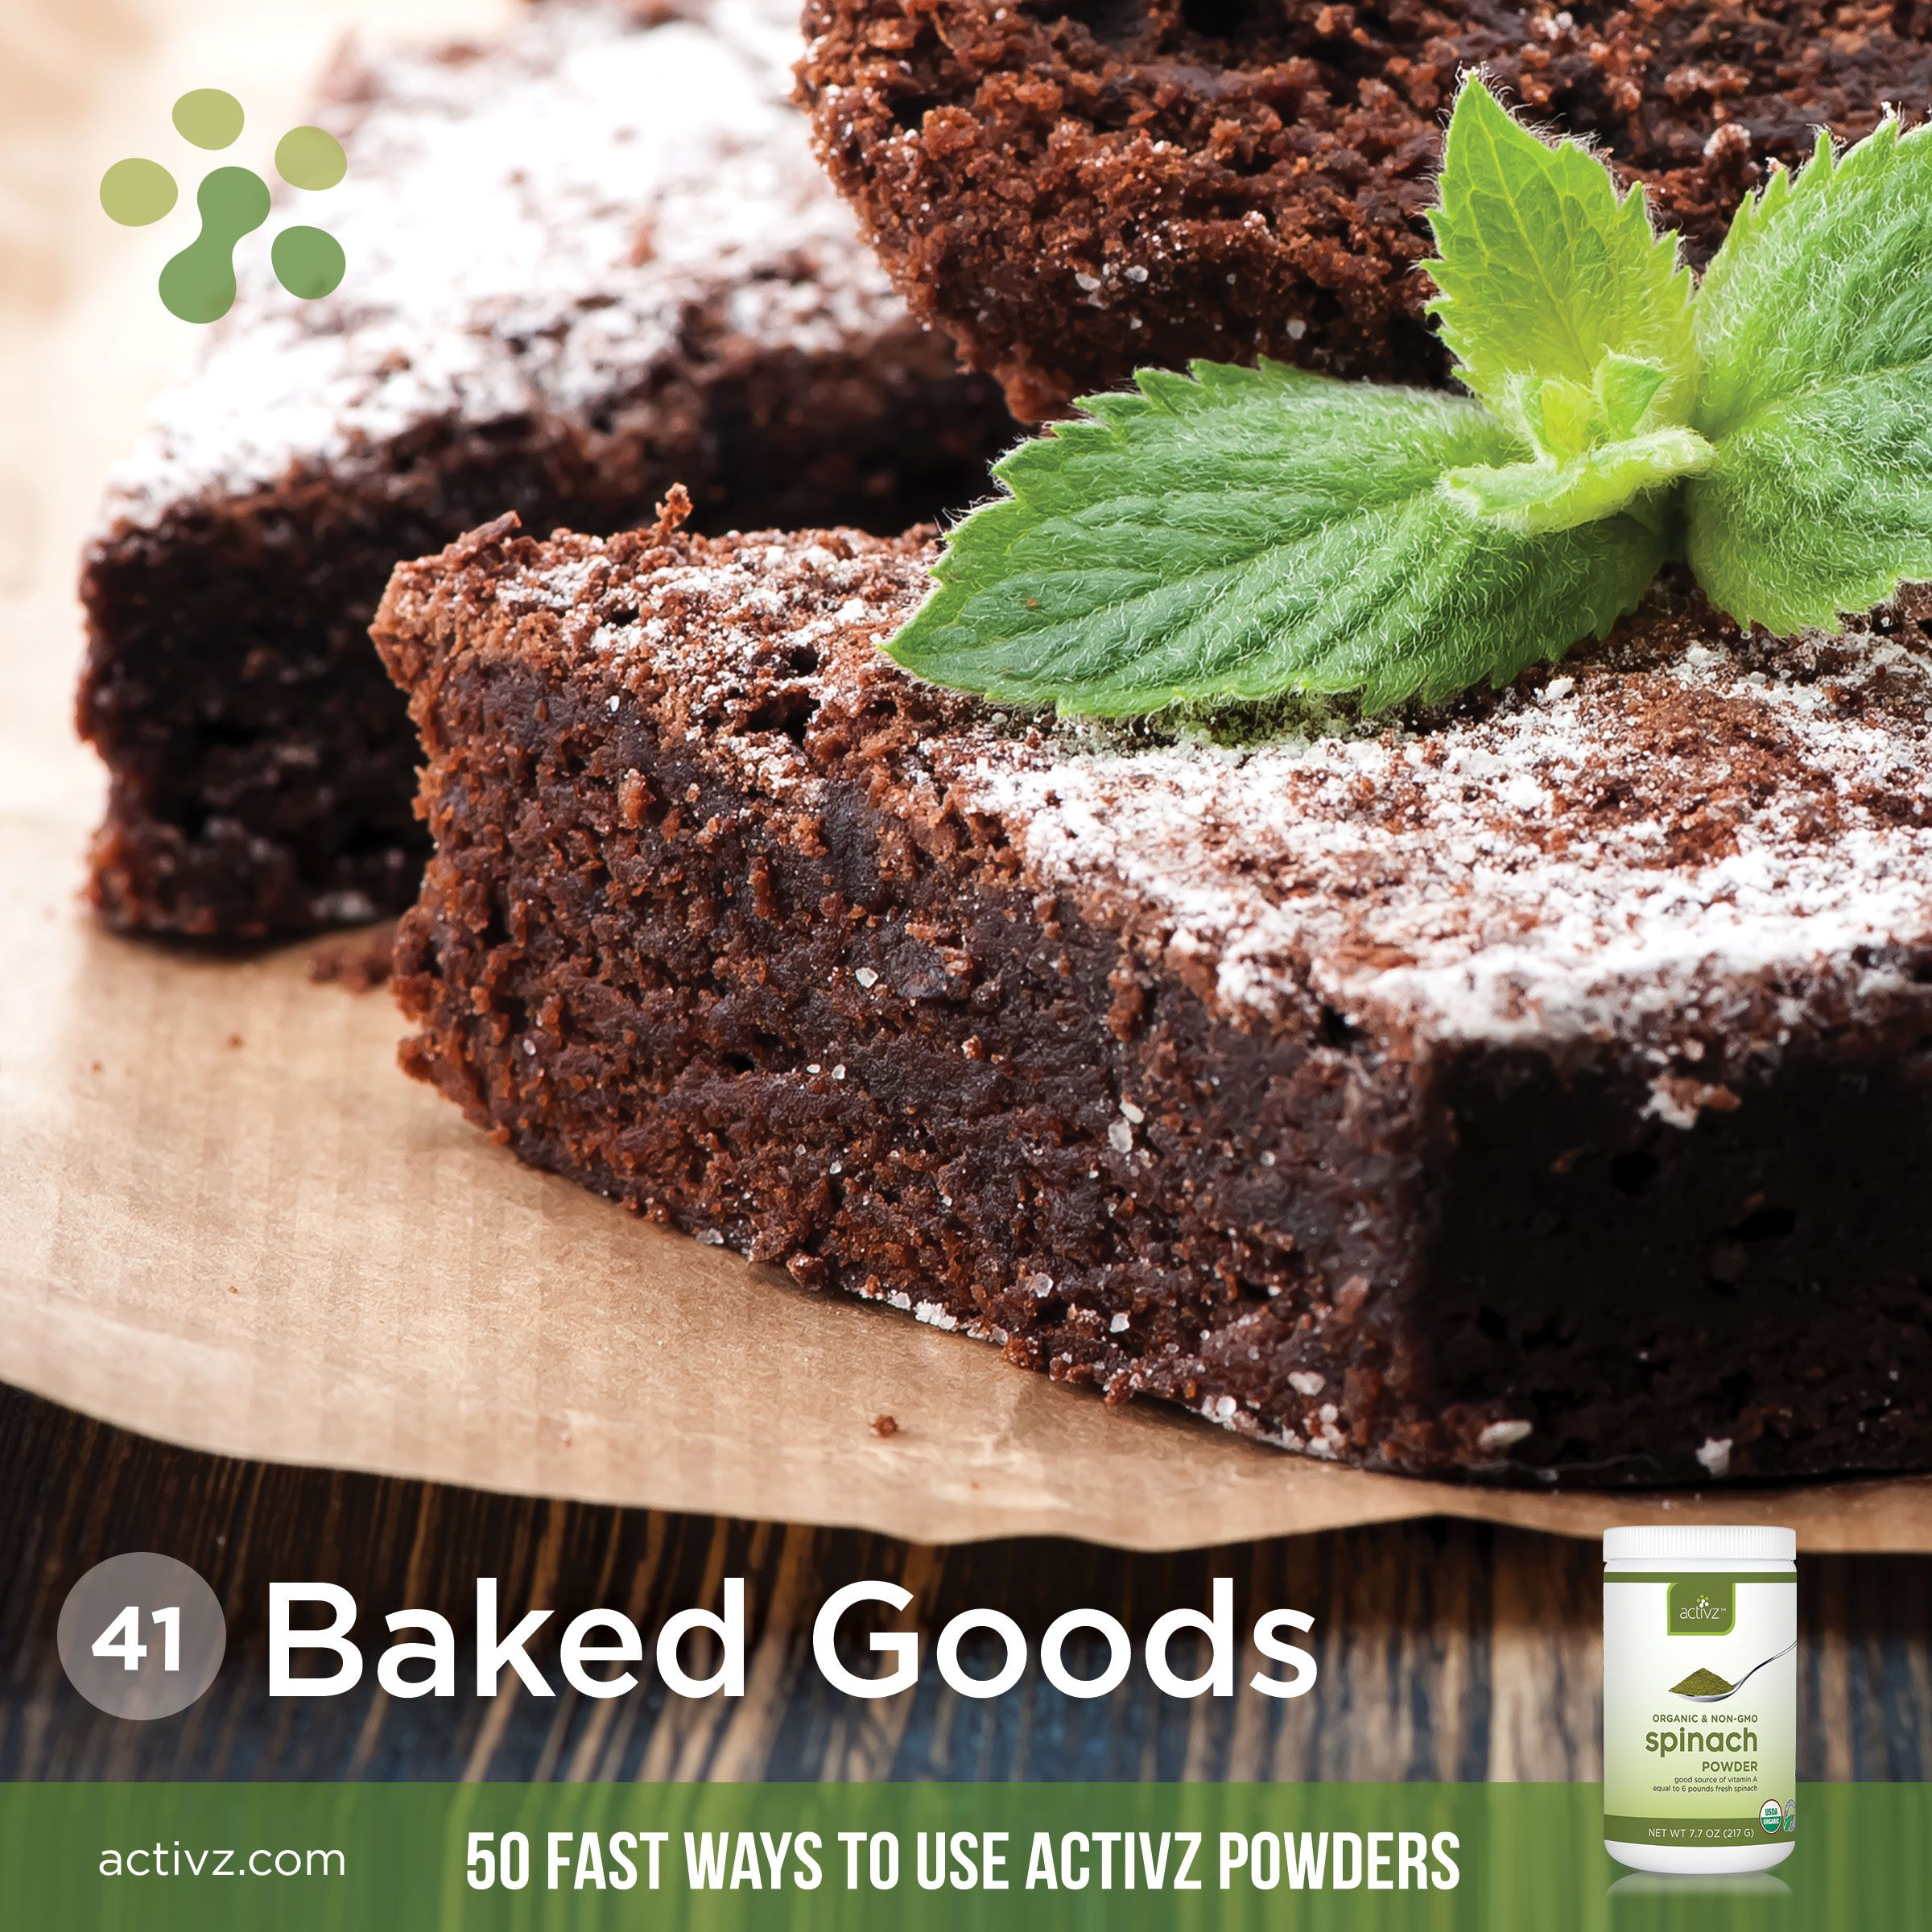 Activz Additions: Baked goods | Spinach in your brownies? | 50 Fast Ways recipe